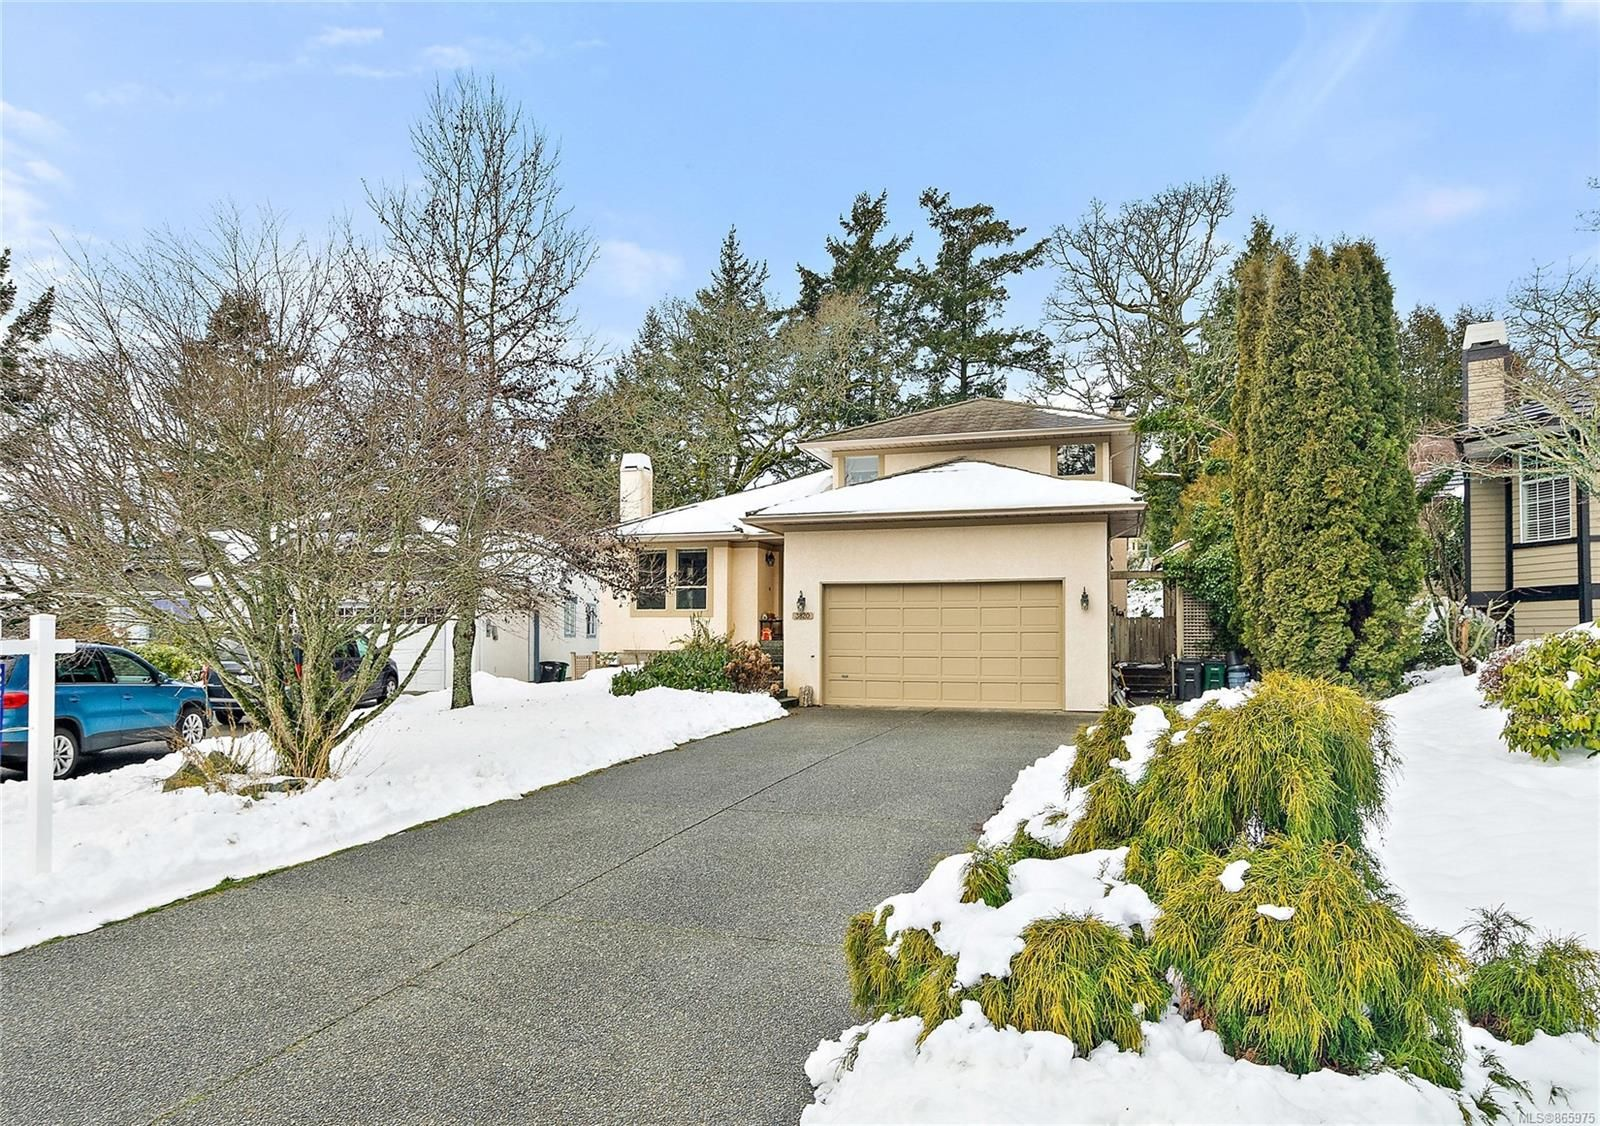 Main Photo: 3820 Cardie Crt in : SW Strawberry Vale House for sale (Saanich West)  : MLS®# 865975